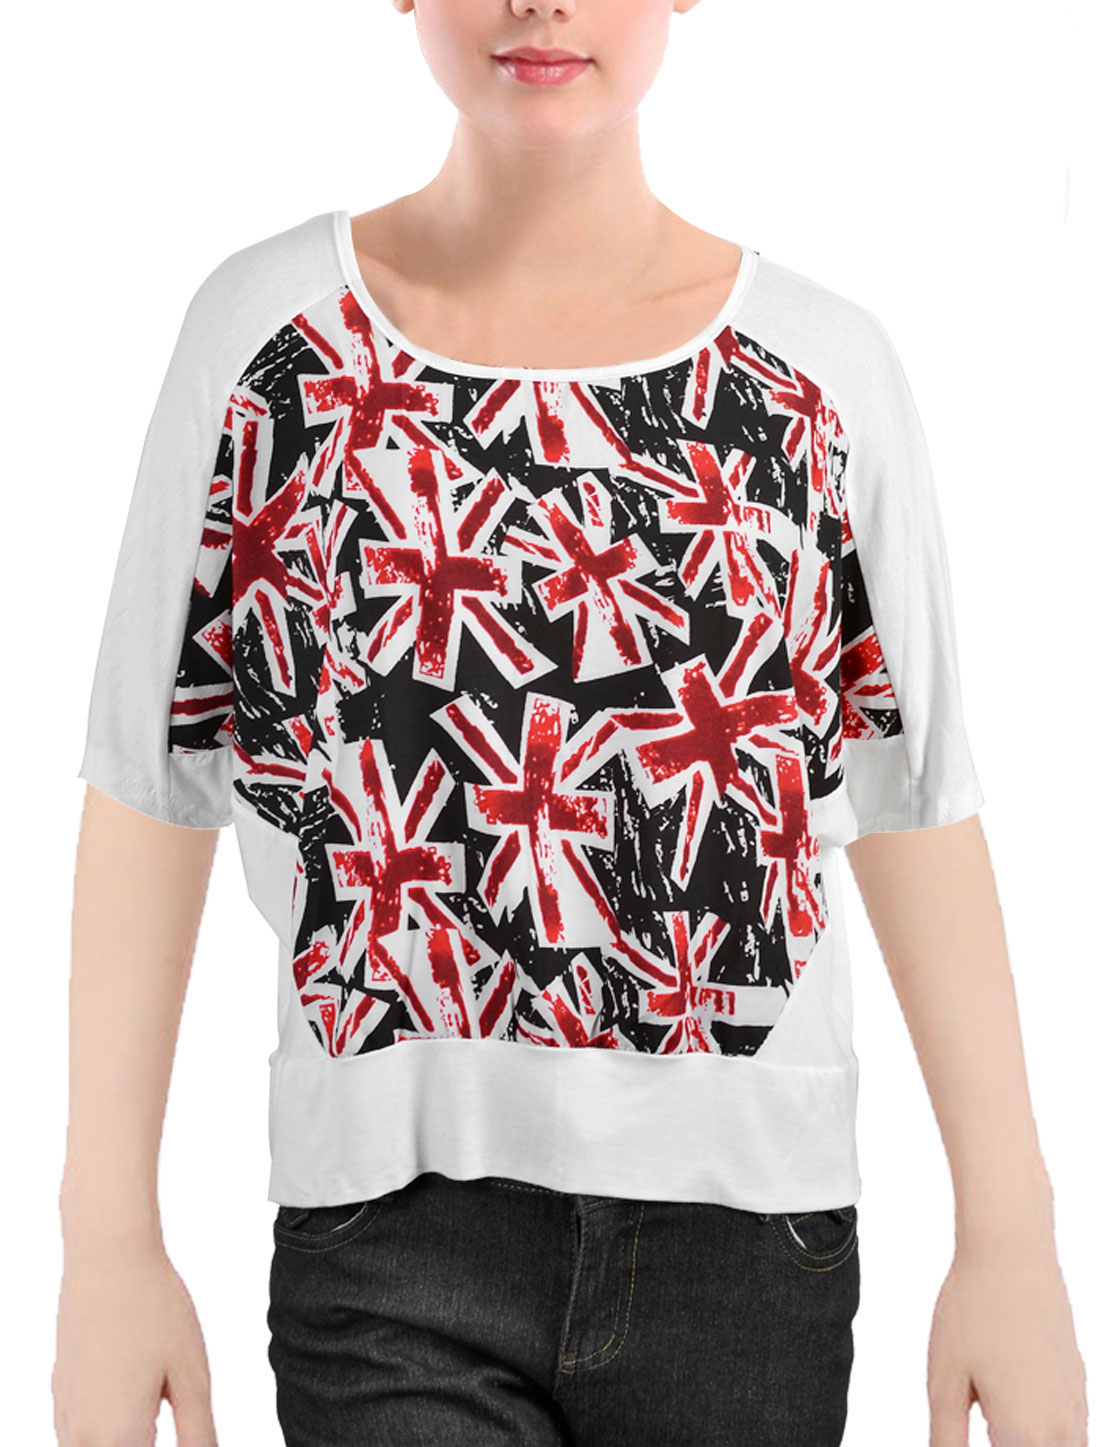 Woman White Burgundy Black Union Jack Print Batwing Sleeves Blouse Top Shirt XL